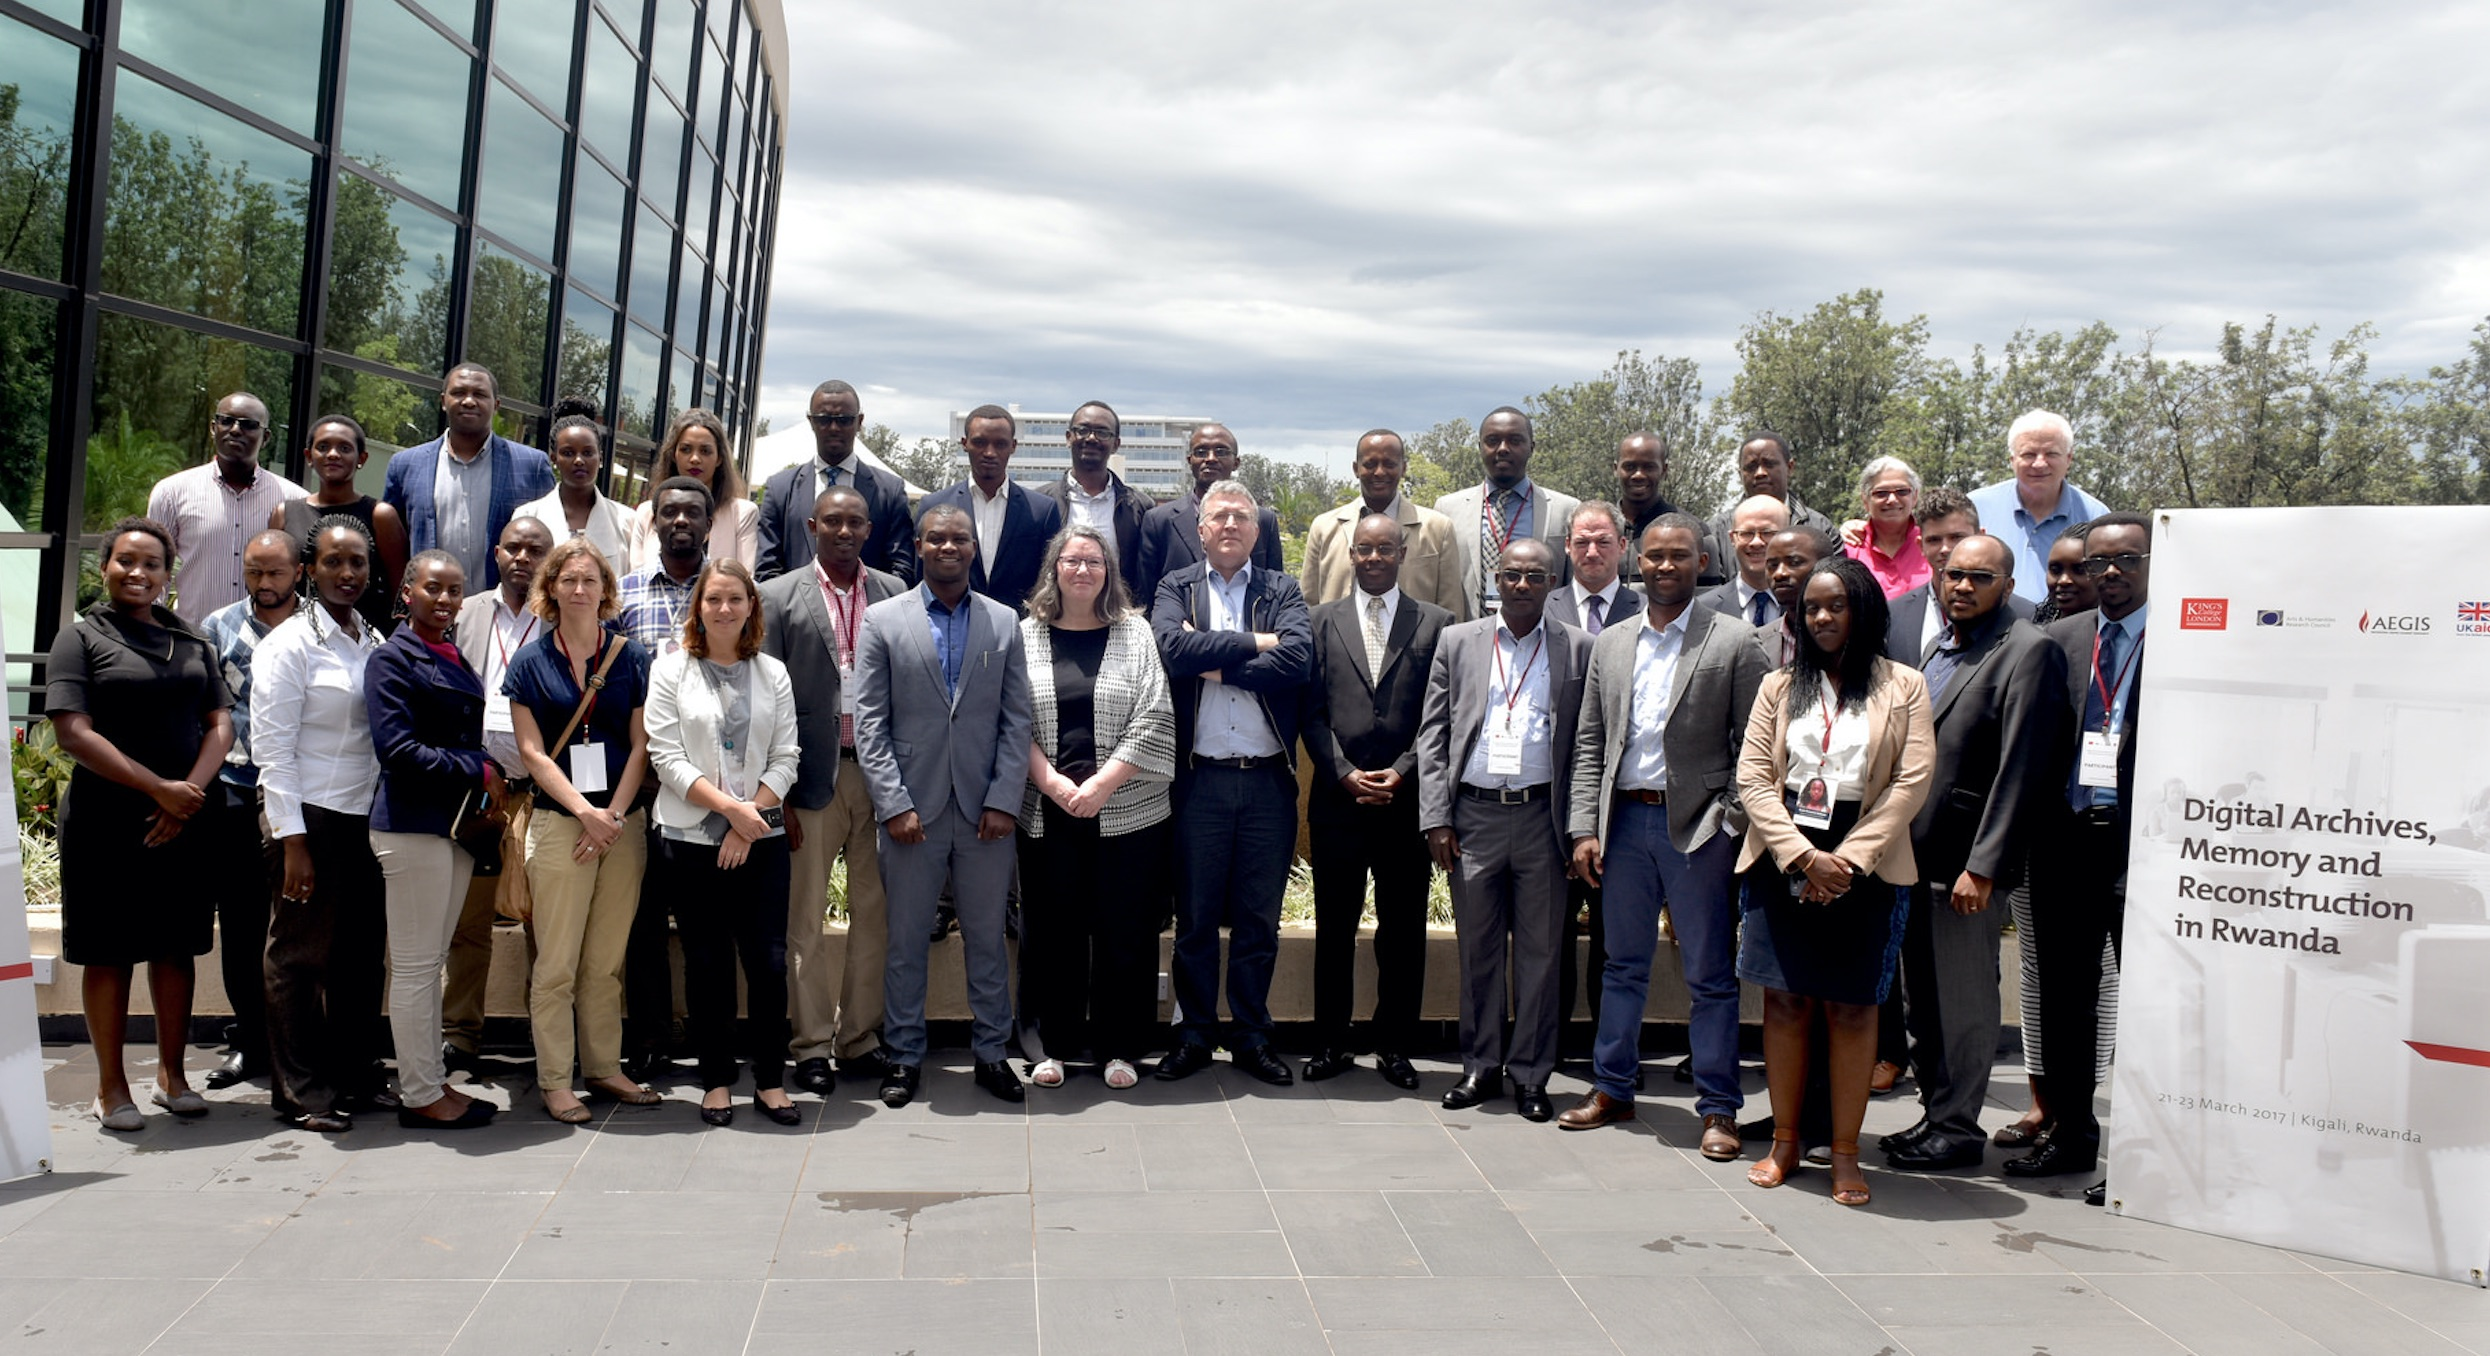 The Aegis Trust and King's College London (KCL) conference on Digital Archives, Memory and Reconstruction in Rwanda concluded with the development of a roadmap to improve the quality of archiving in Rwanda as well as access to existing and future digital archives.